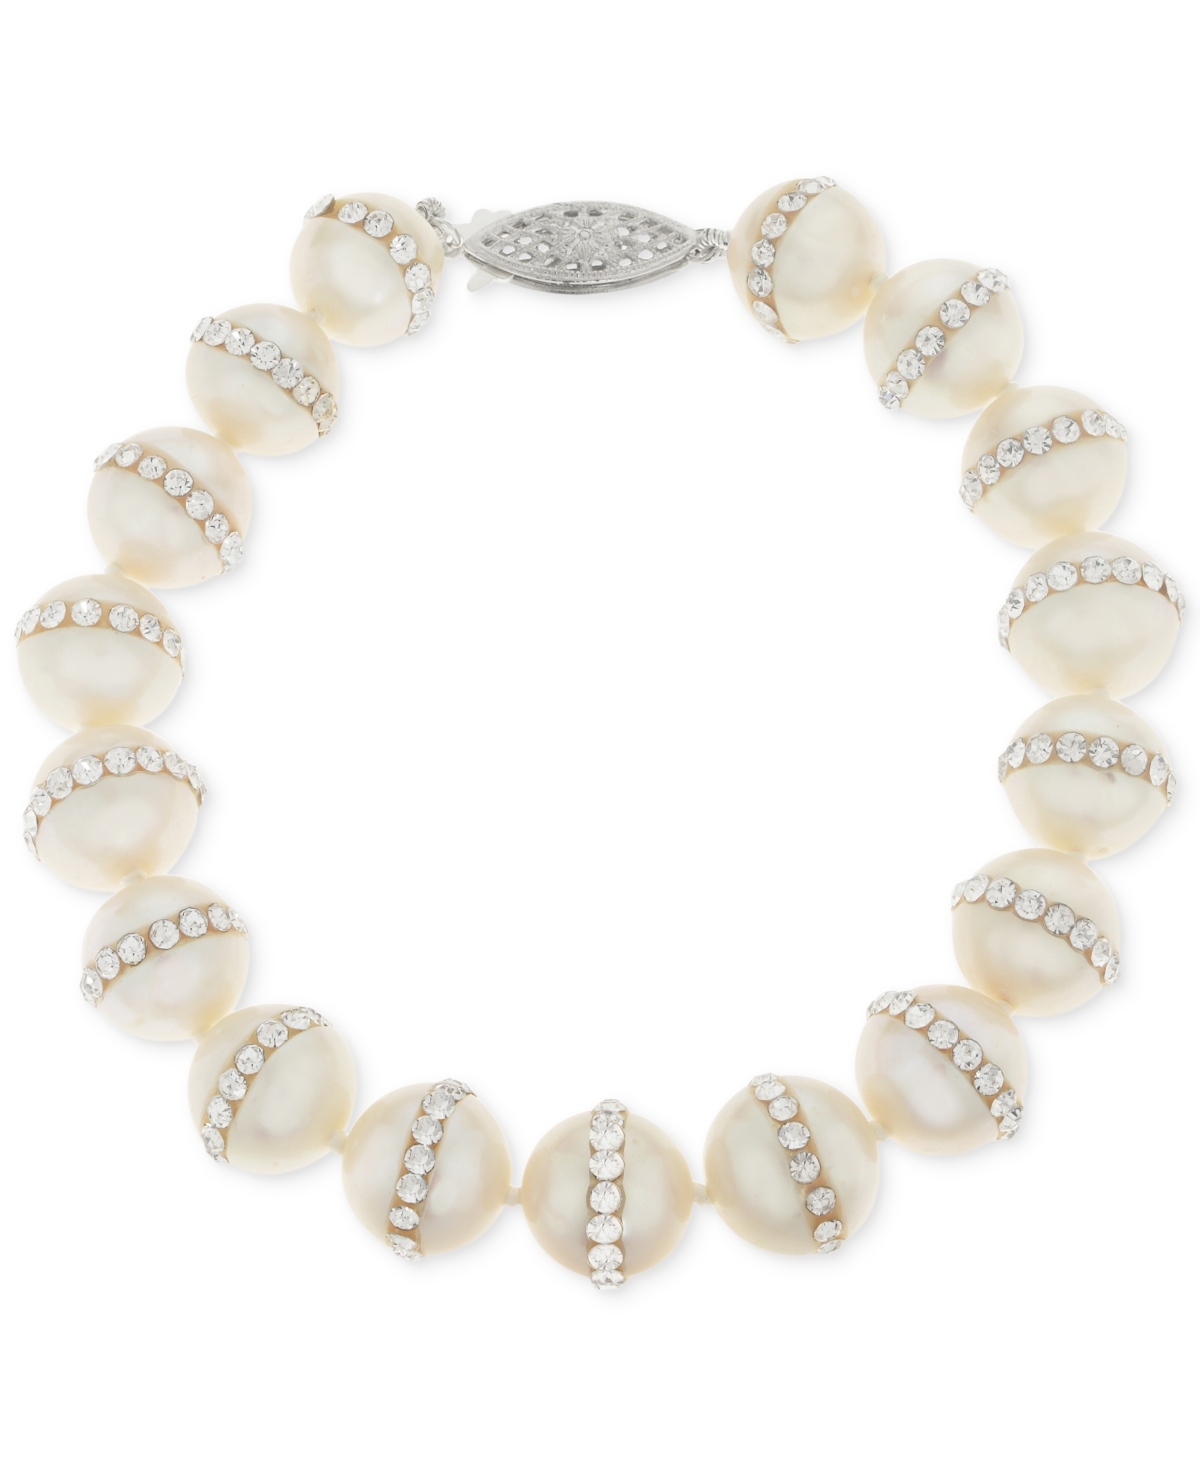 Cultured Freshwater Pearl (9.5mm) and Crystal Bracelet